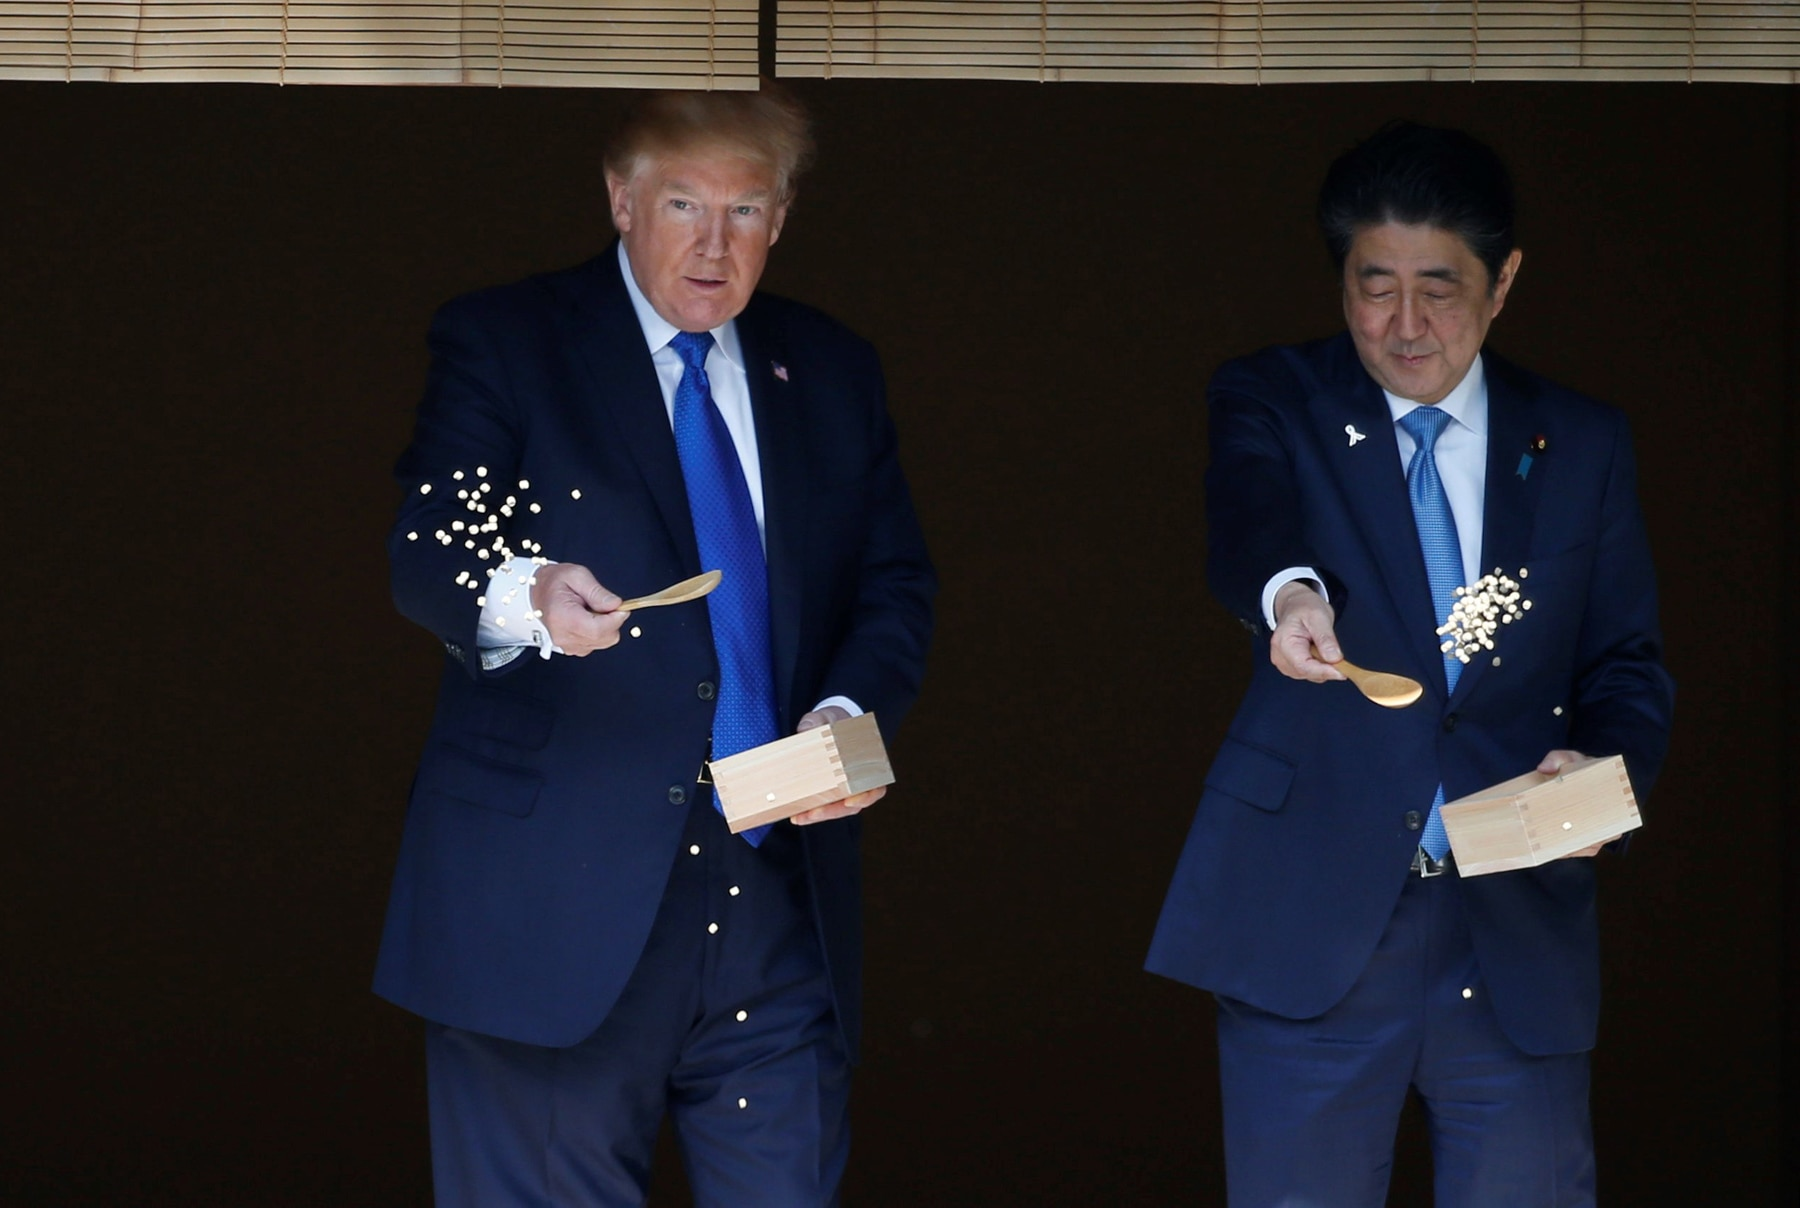 President Trump and Prime Minister Abe feeding fish (© Toru Hanai/Andalou Agency/Getty Images)